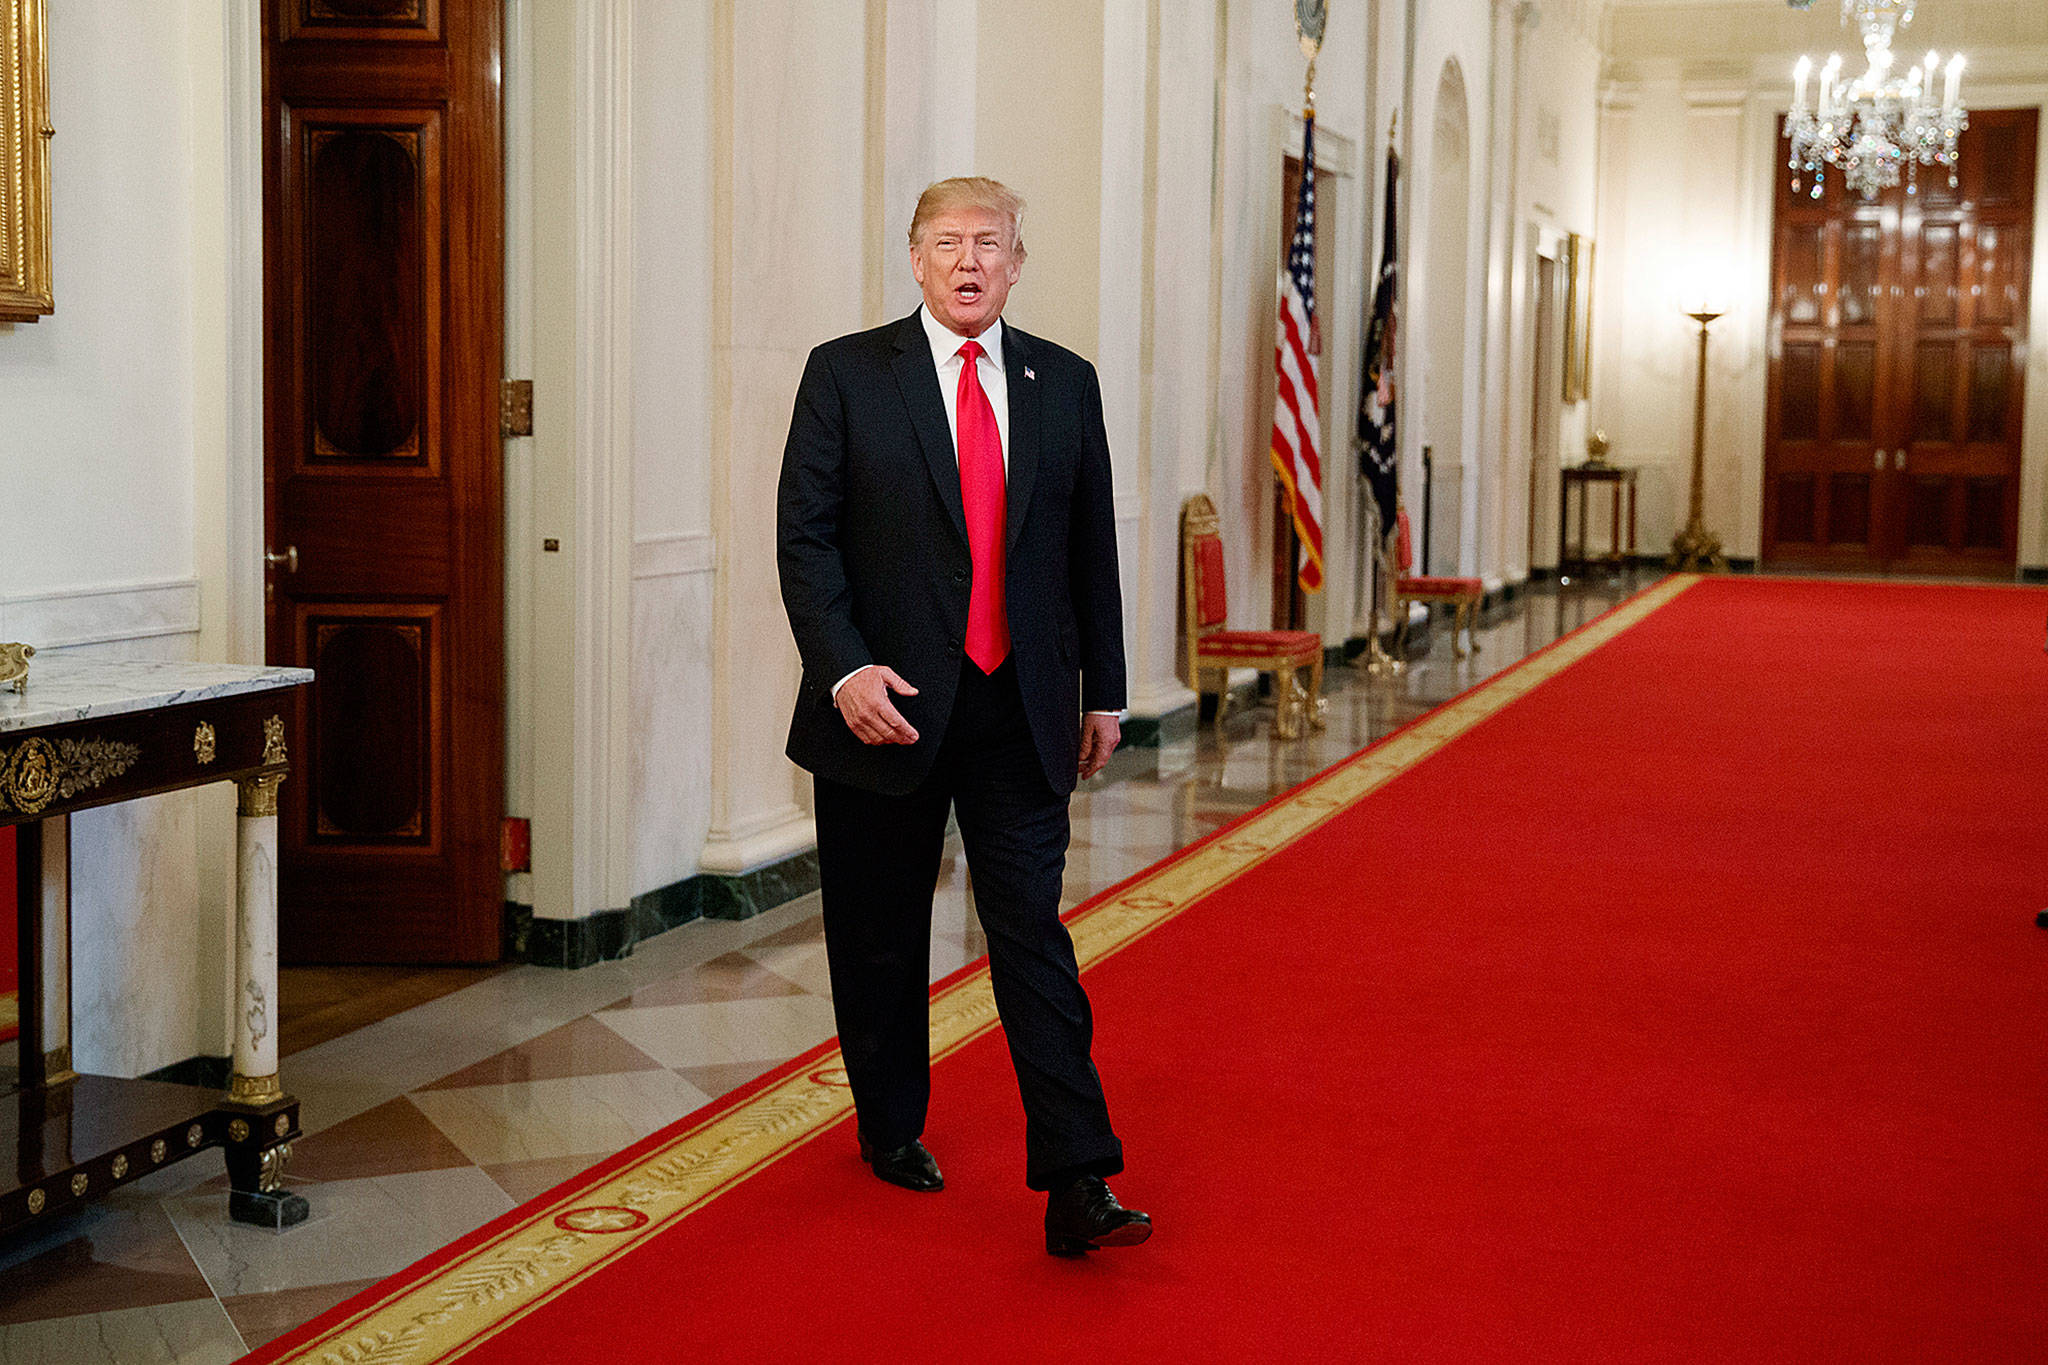 President Donald Trump arrives to speak to the White House Opioid Summit in the East Room of the White House on Thursday. (AP Photo/Evan Vucci)